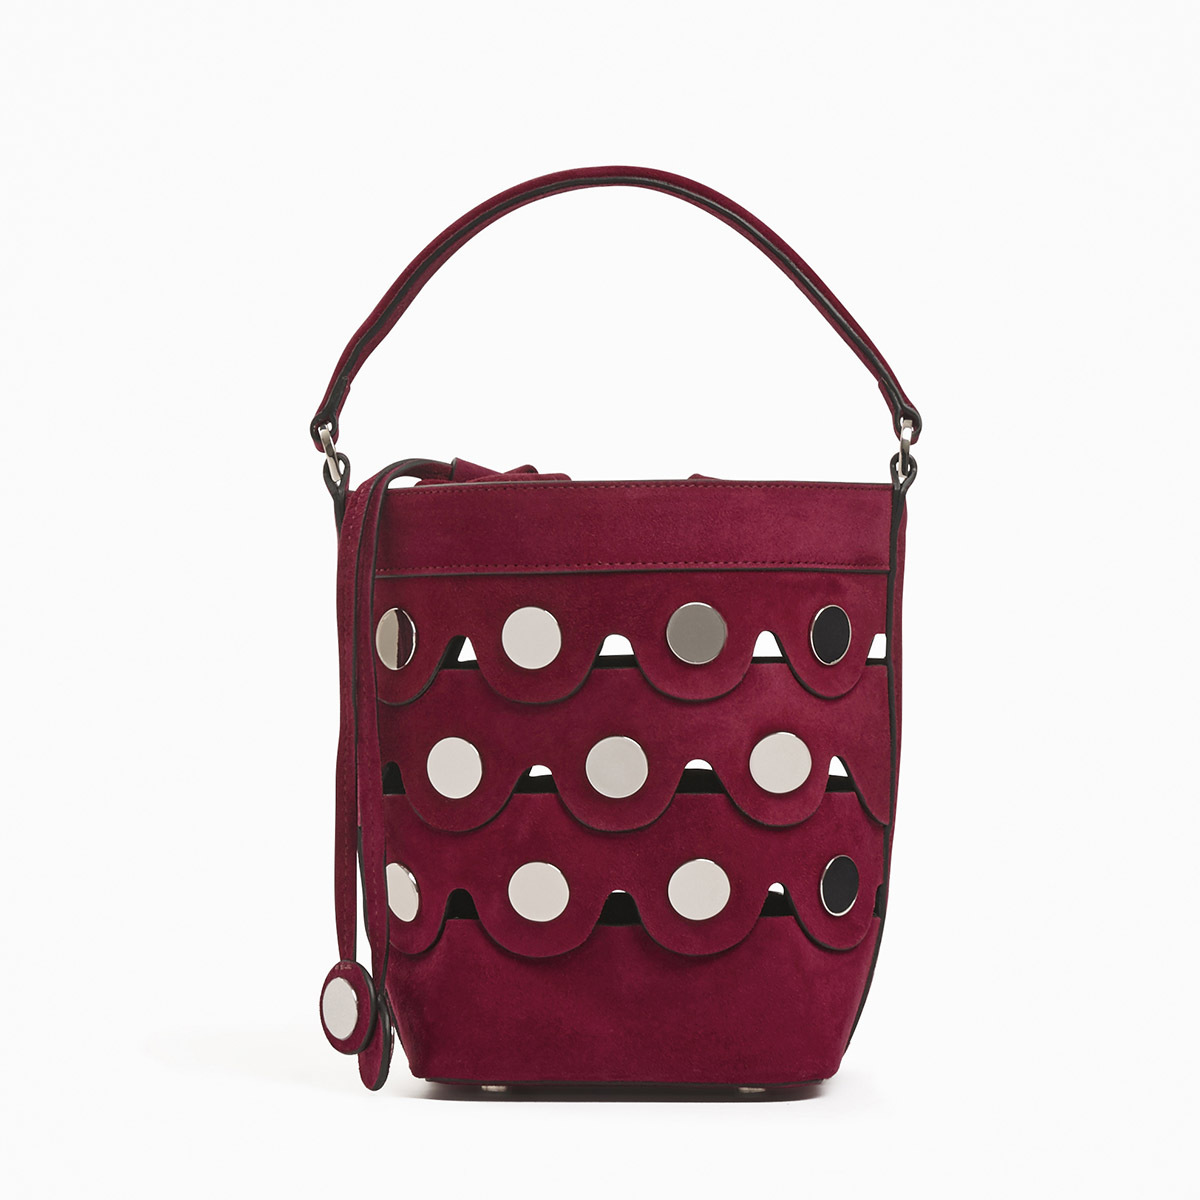 PIERRE HARDY PENNY BAG BORDEAUX